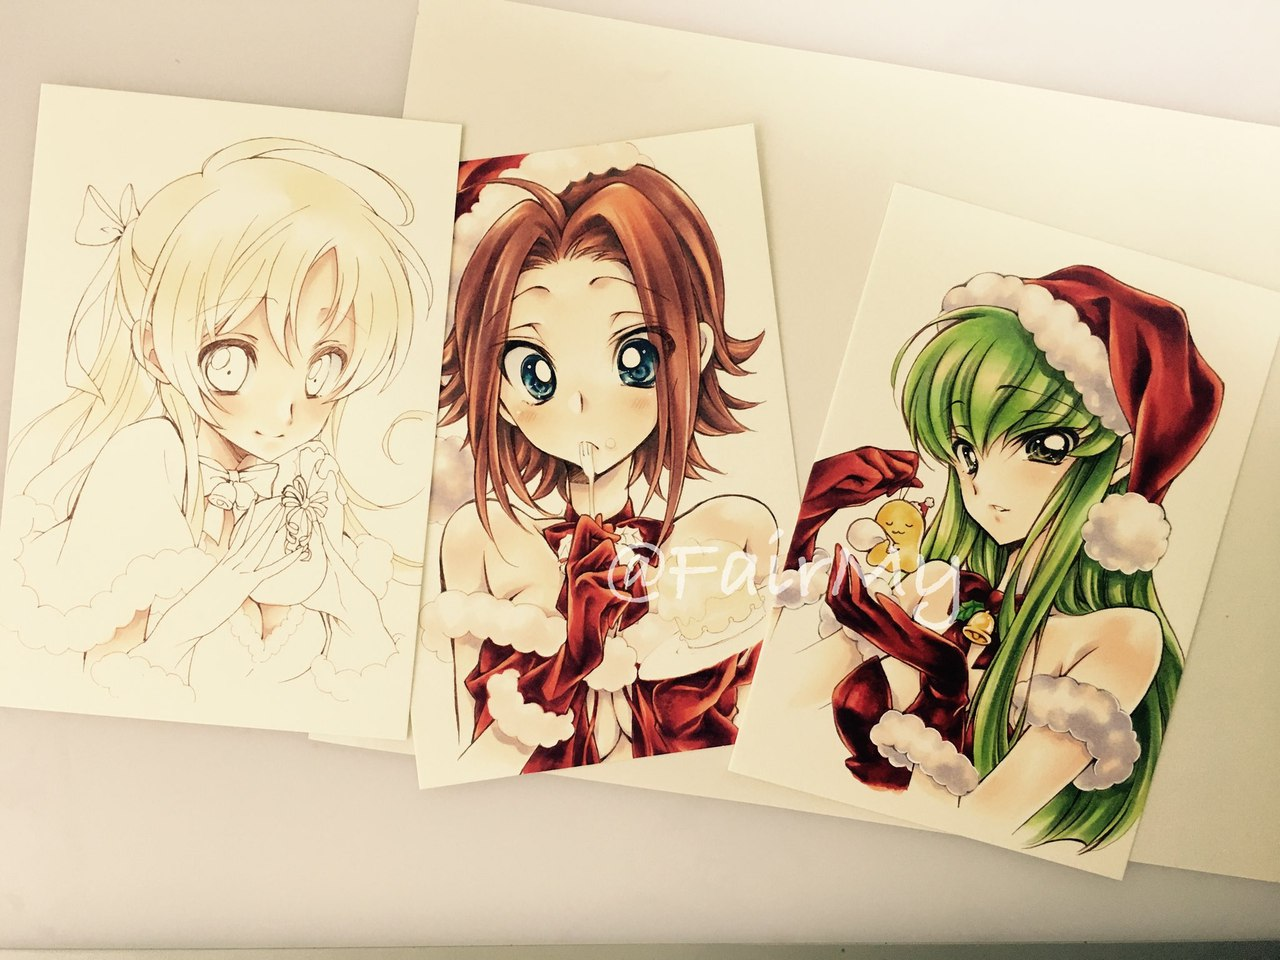 http://rom-brotherhood.ucoz.ru/CodeGeass/Illustrations/ng-konkurs.jpg